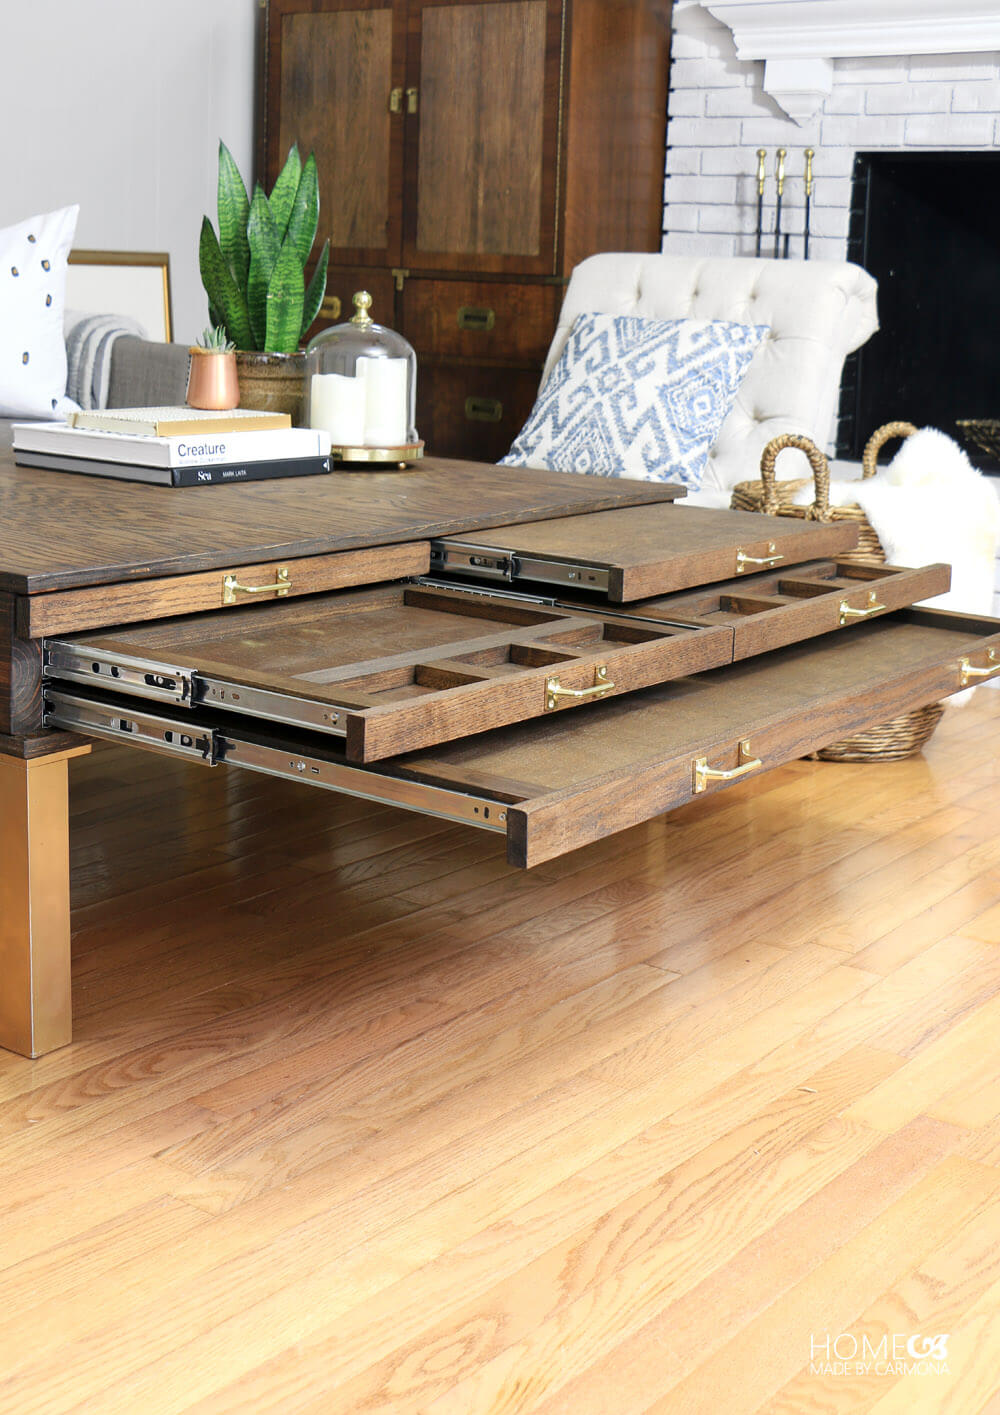 DIY Coffee Table With Storage Compartments